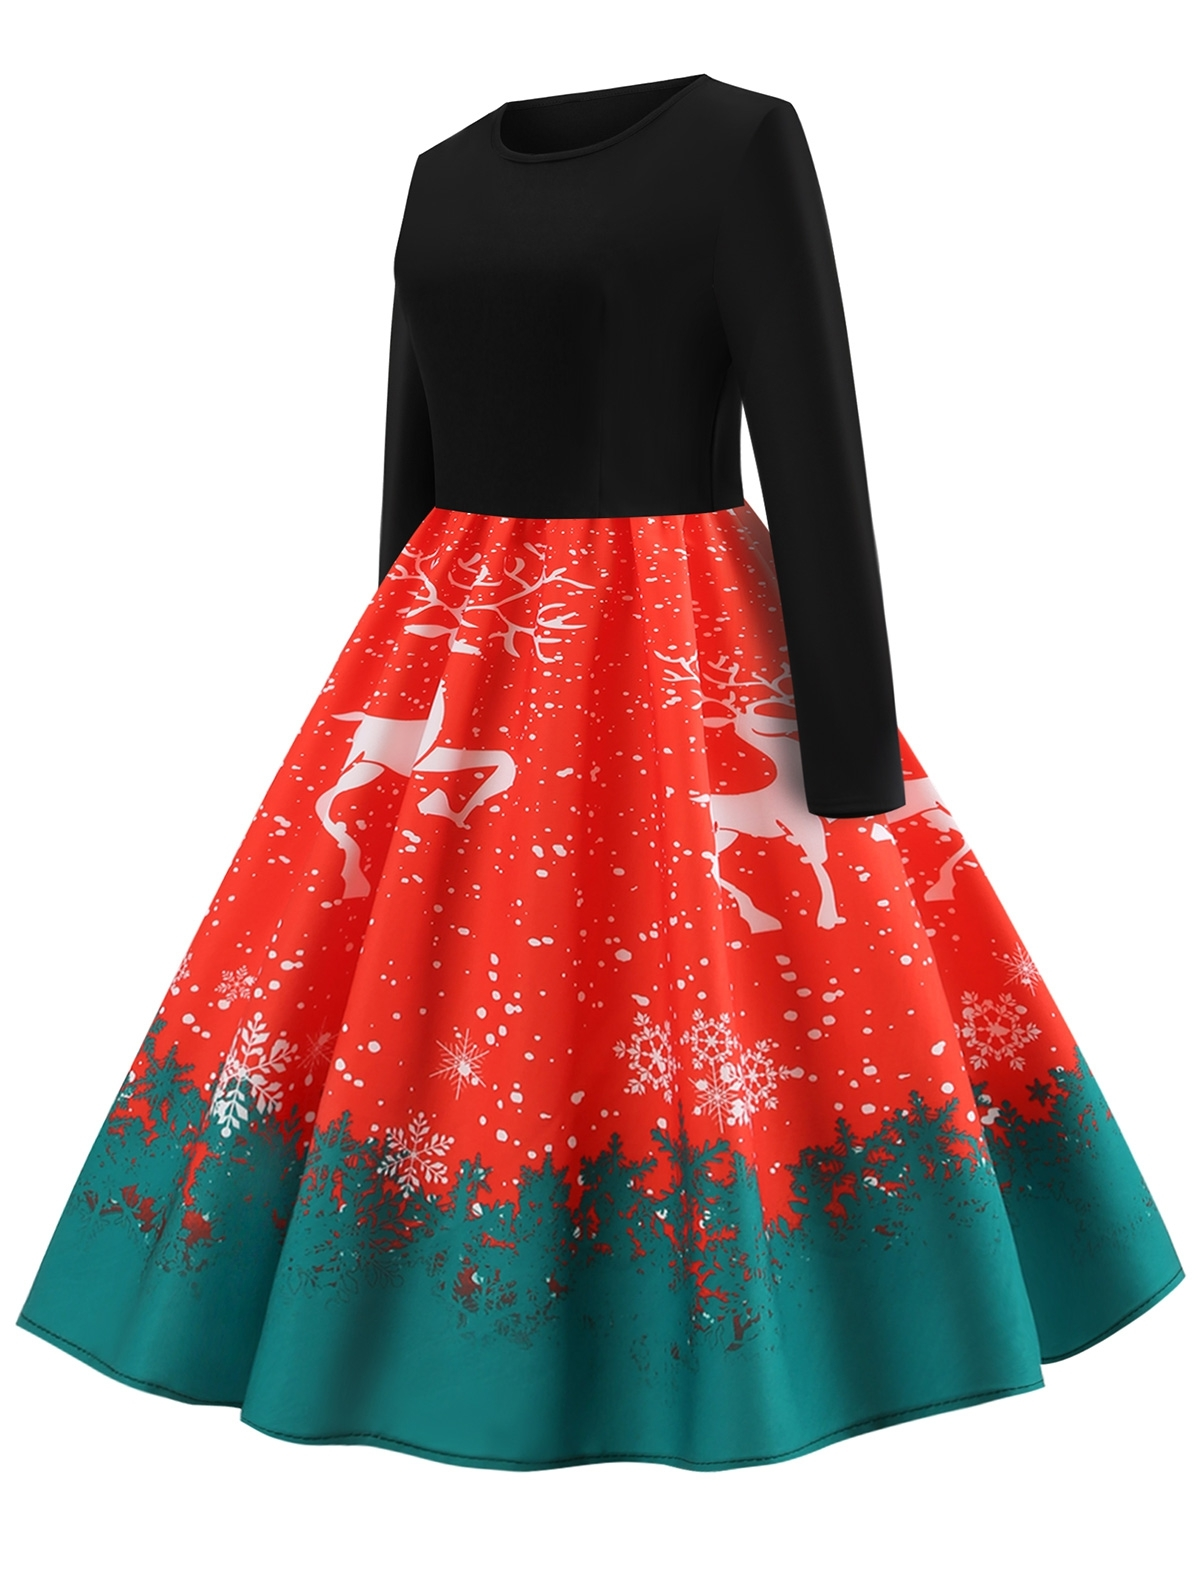 Primary image for Christmas Elk Print Fit and Flare Dress